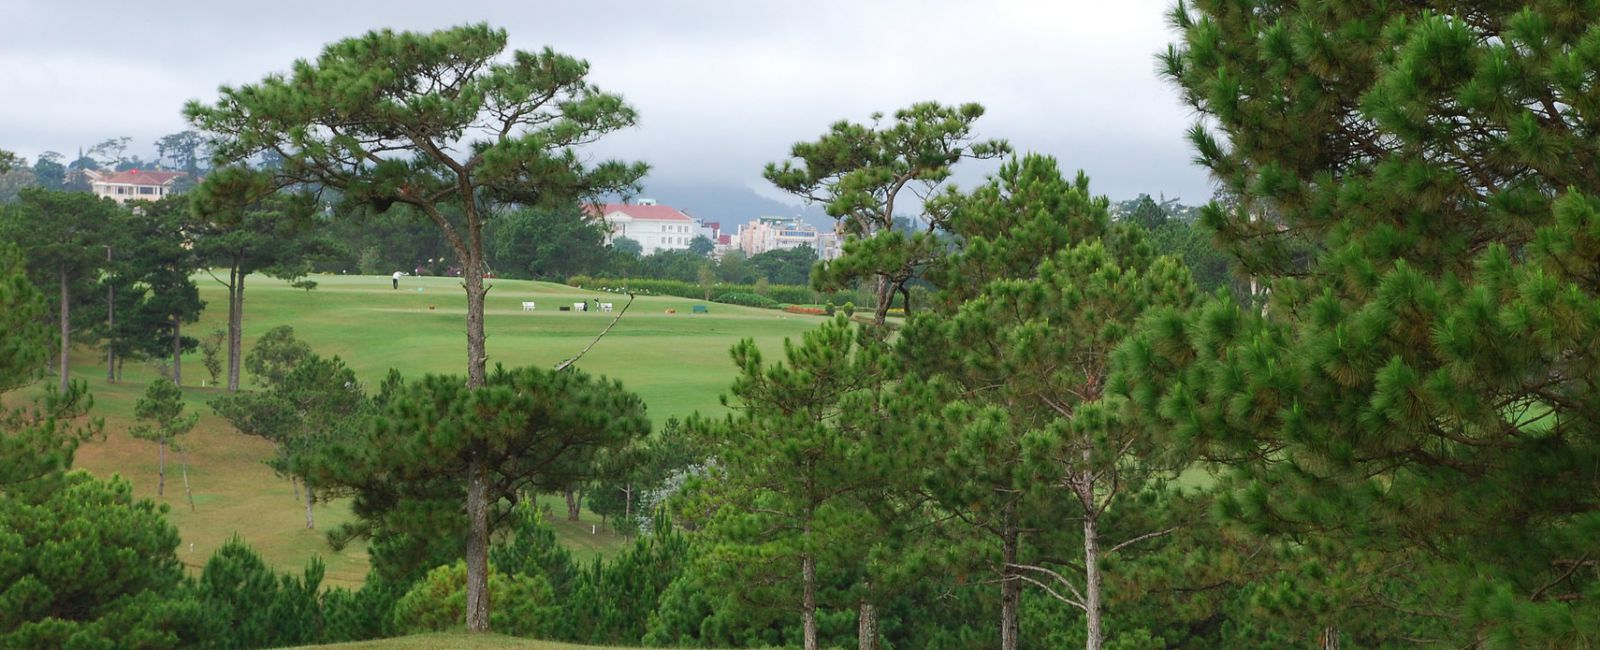 5 Day Golf Dalat and Stay at Palace Heritage Luxury Hotel